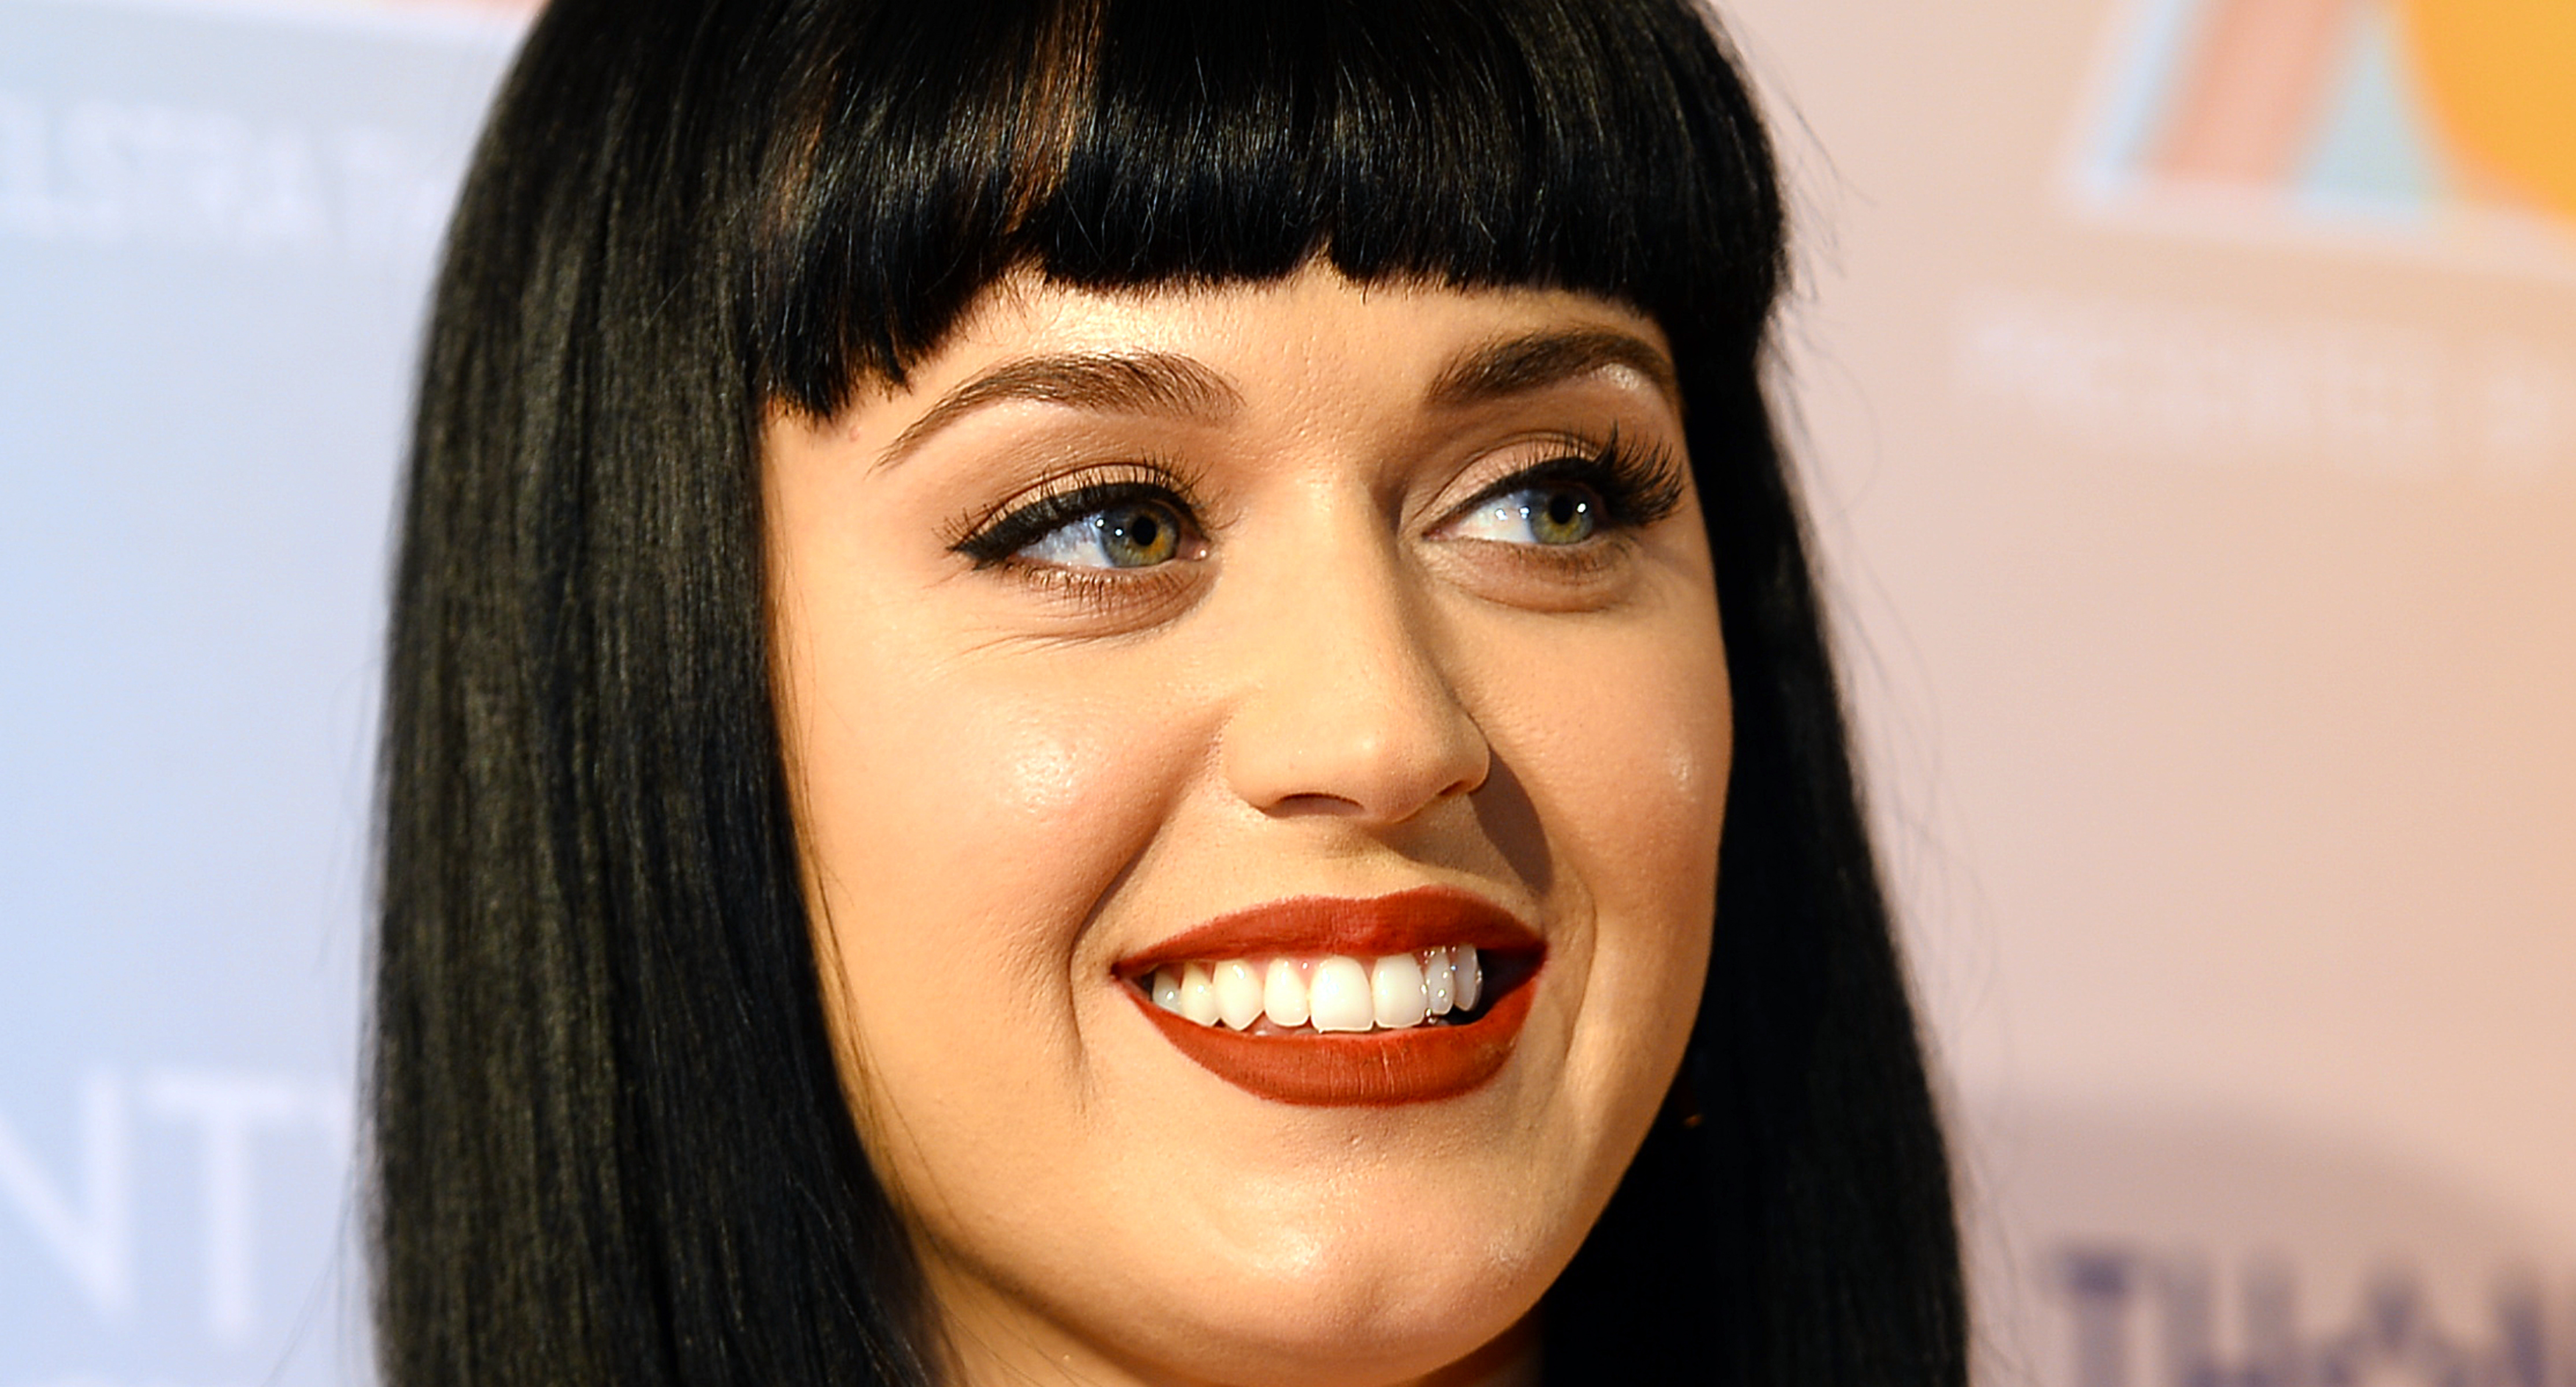 Katy Perry Face Images 1